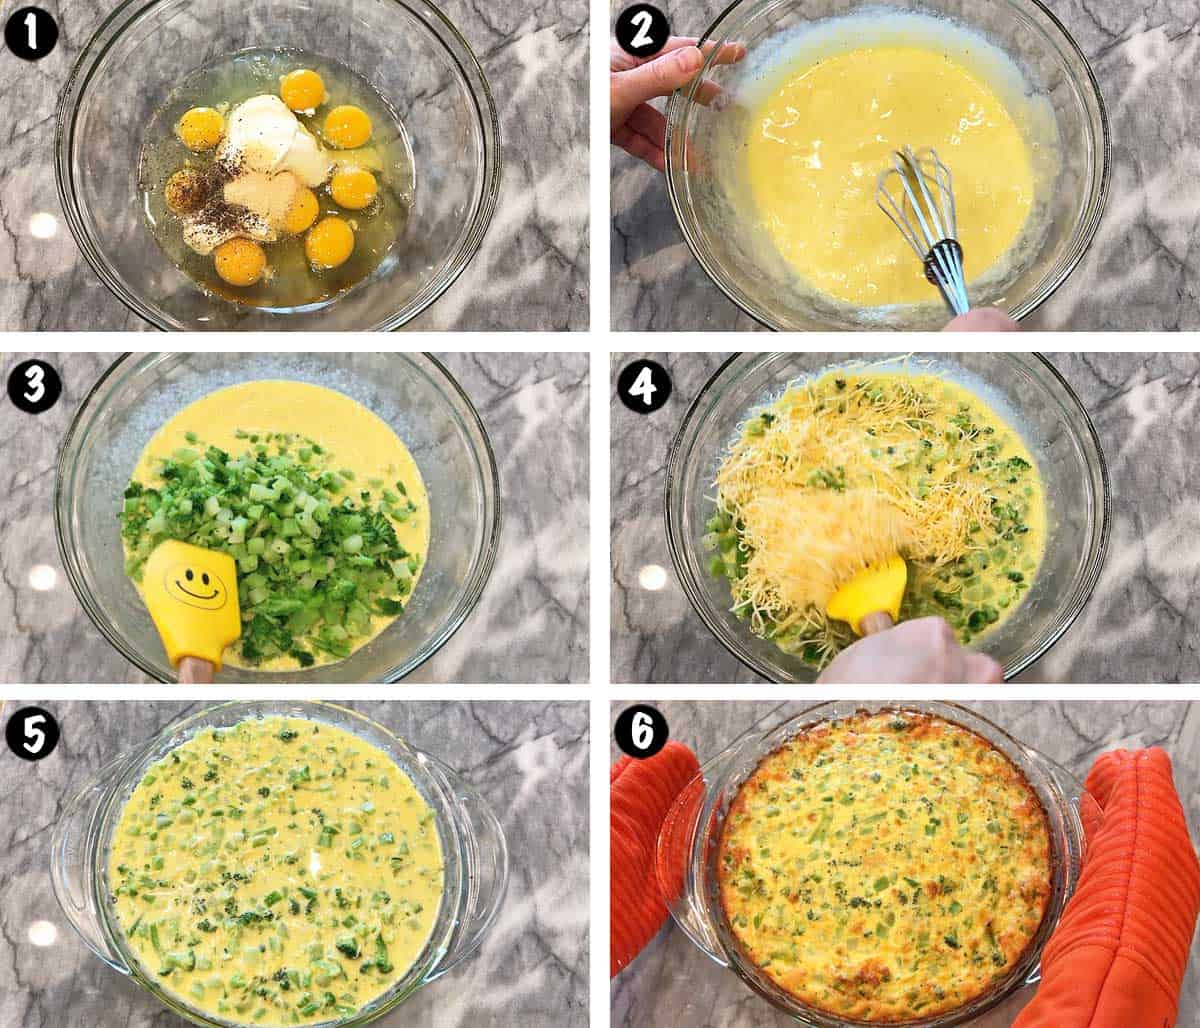 A photo collage showing the steps for making a crustless quiche